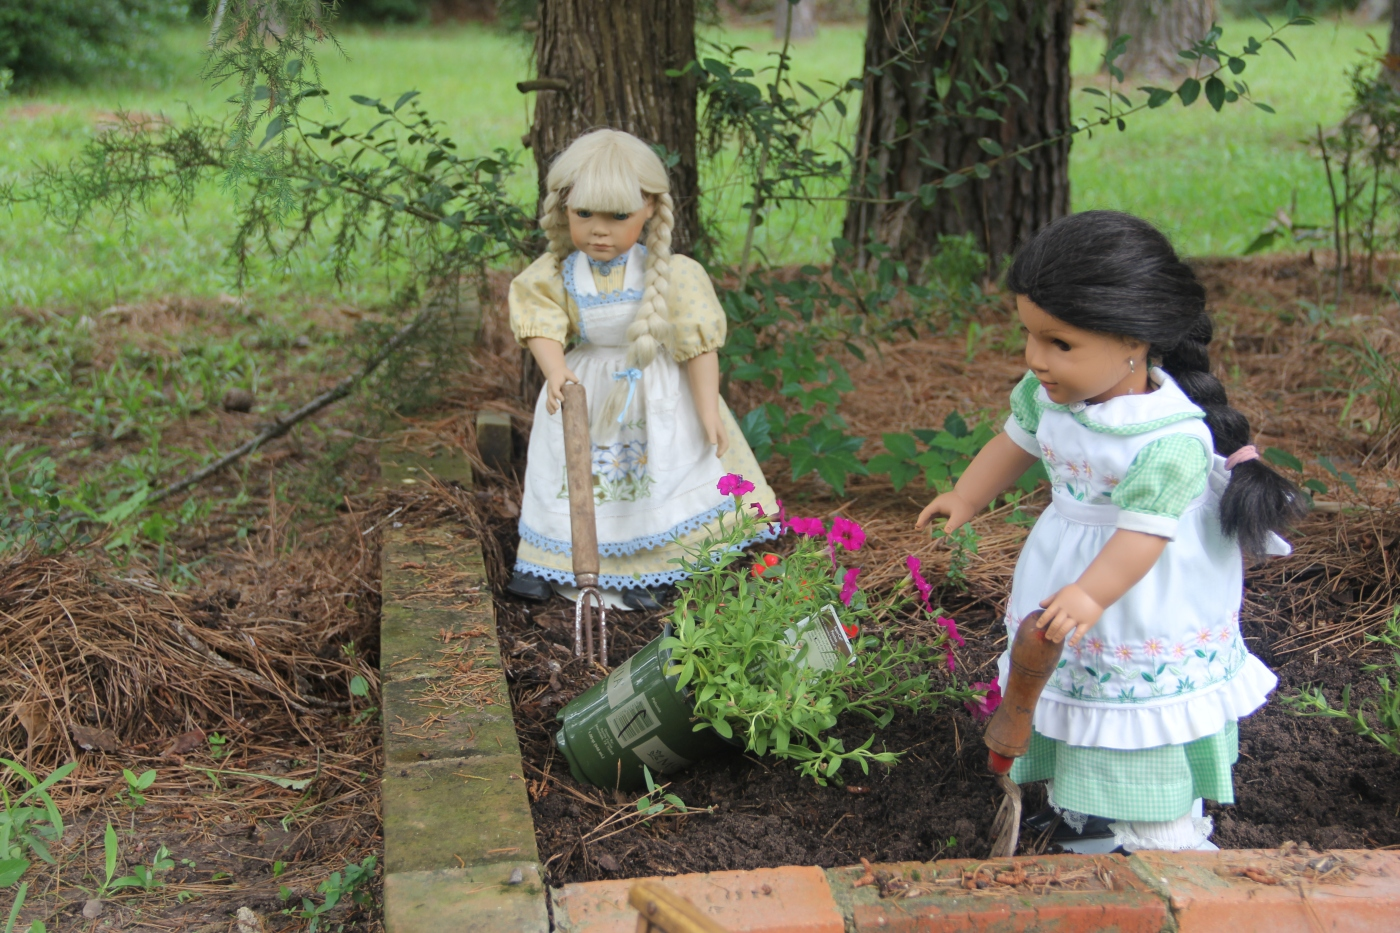 Dolls in the garden. A gardening adventure by stitching with Elli